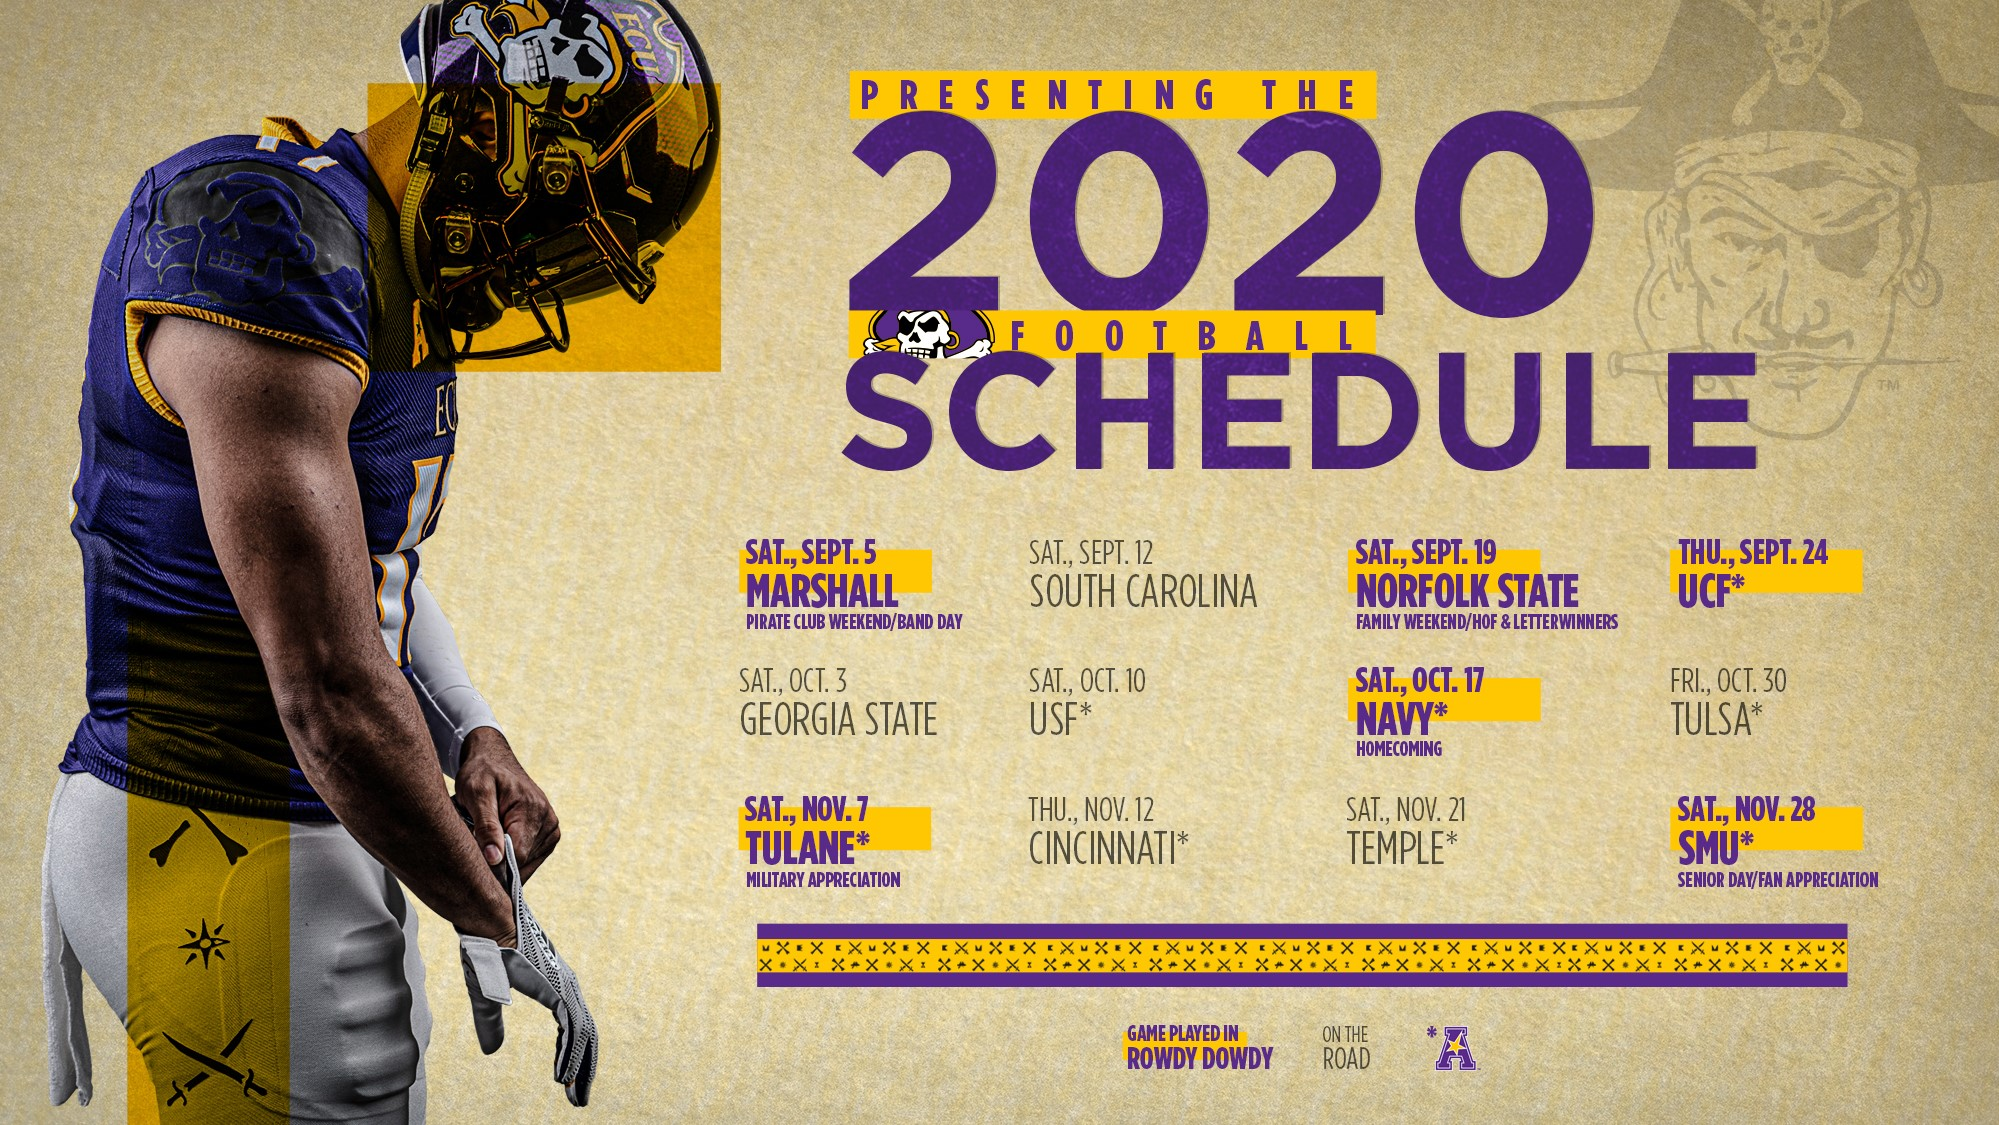 Ecu Announces 2020 Football Schedule East Carolina University Athletics